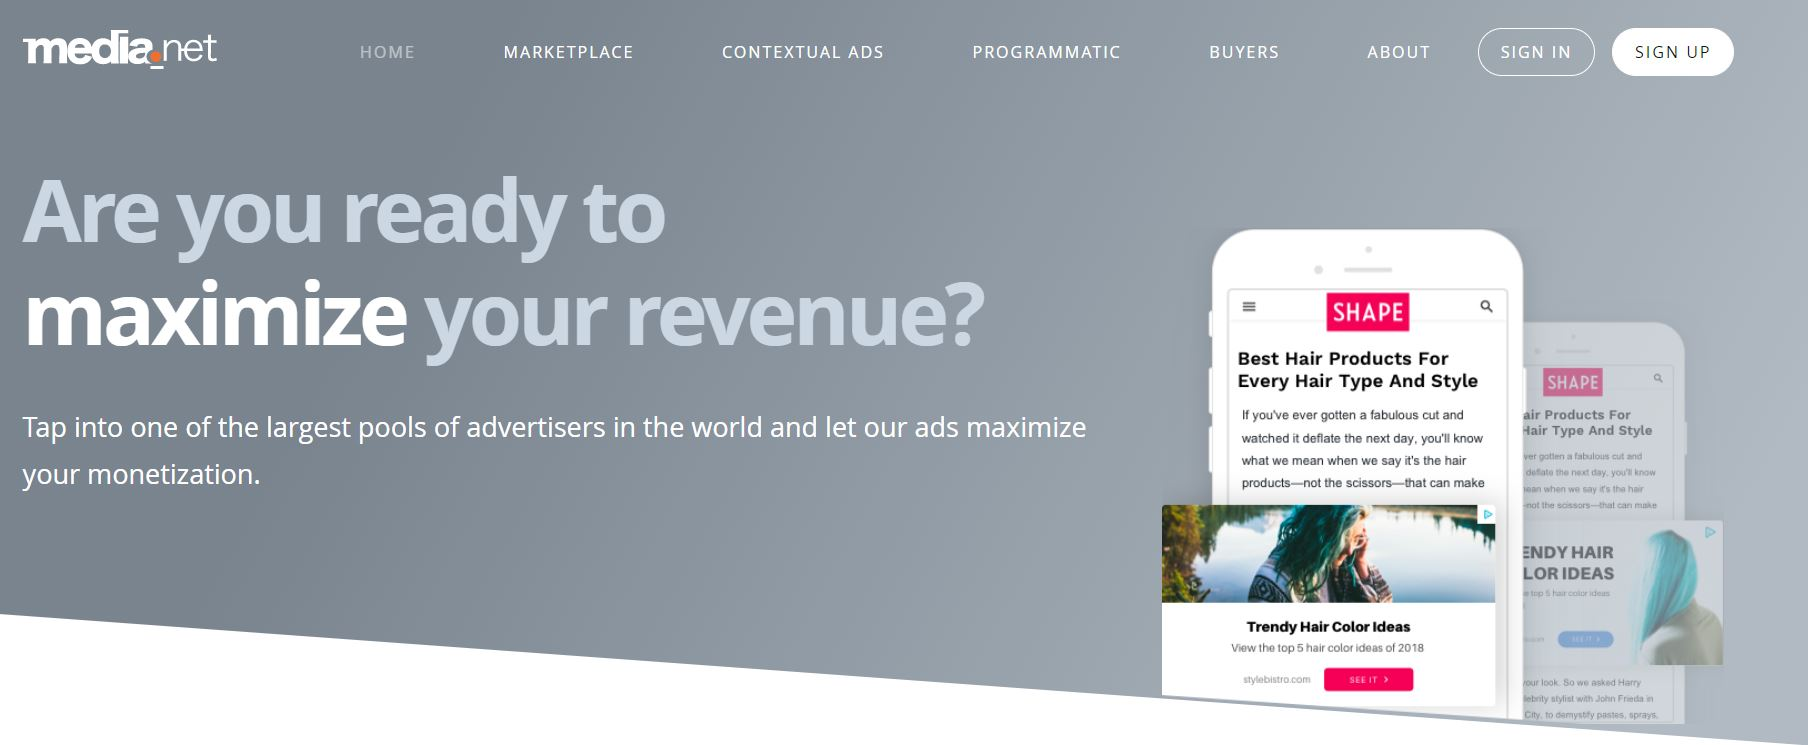 Media.net Review: Features, Pricing, Pros and Cons